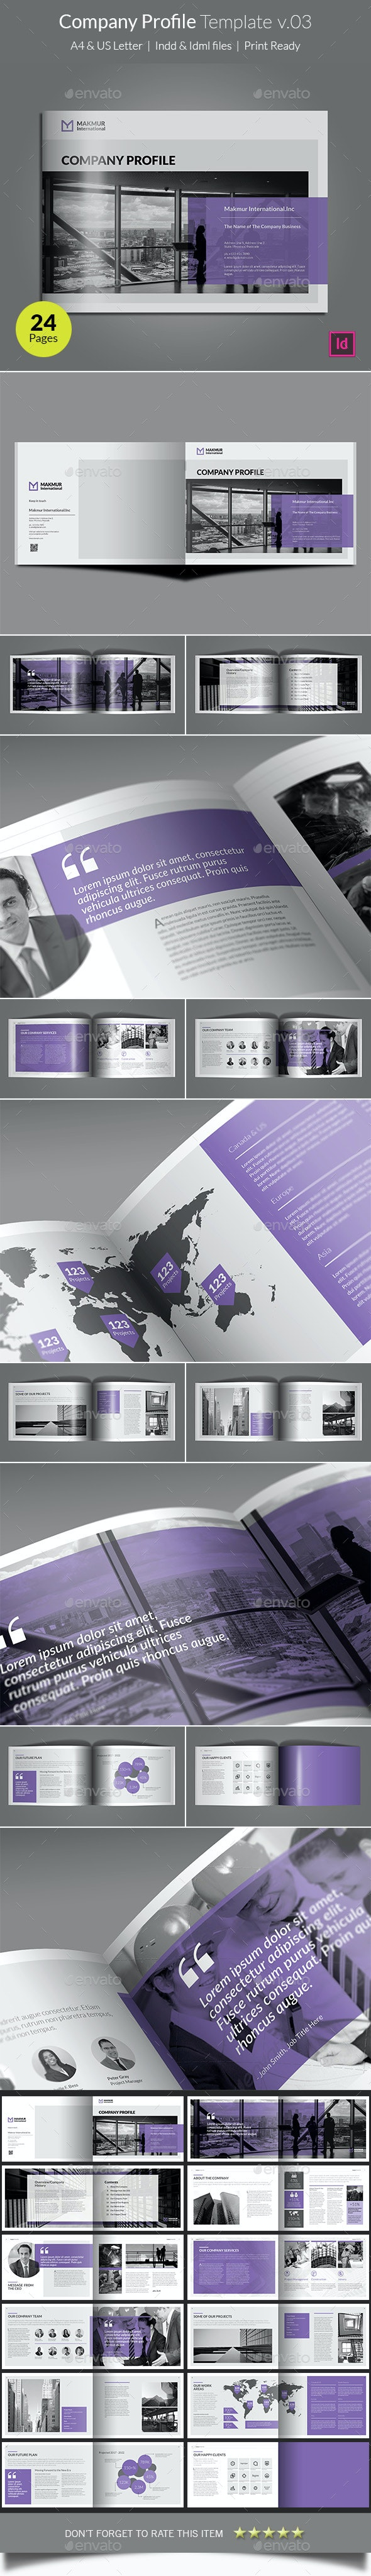 Company Profile Template v03 - Corporate Brochures